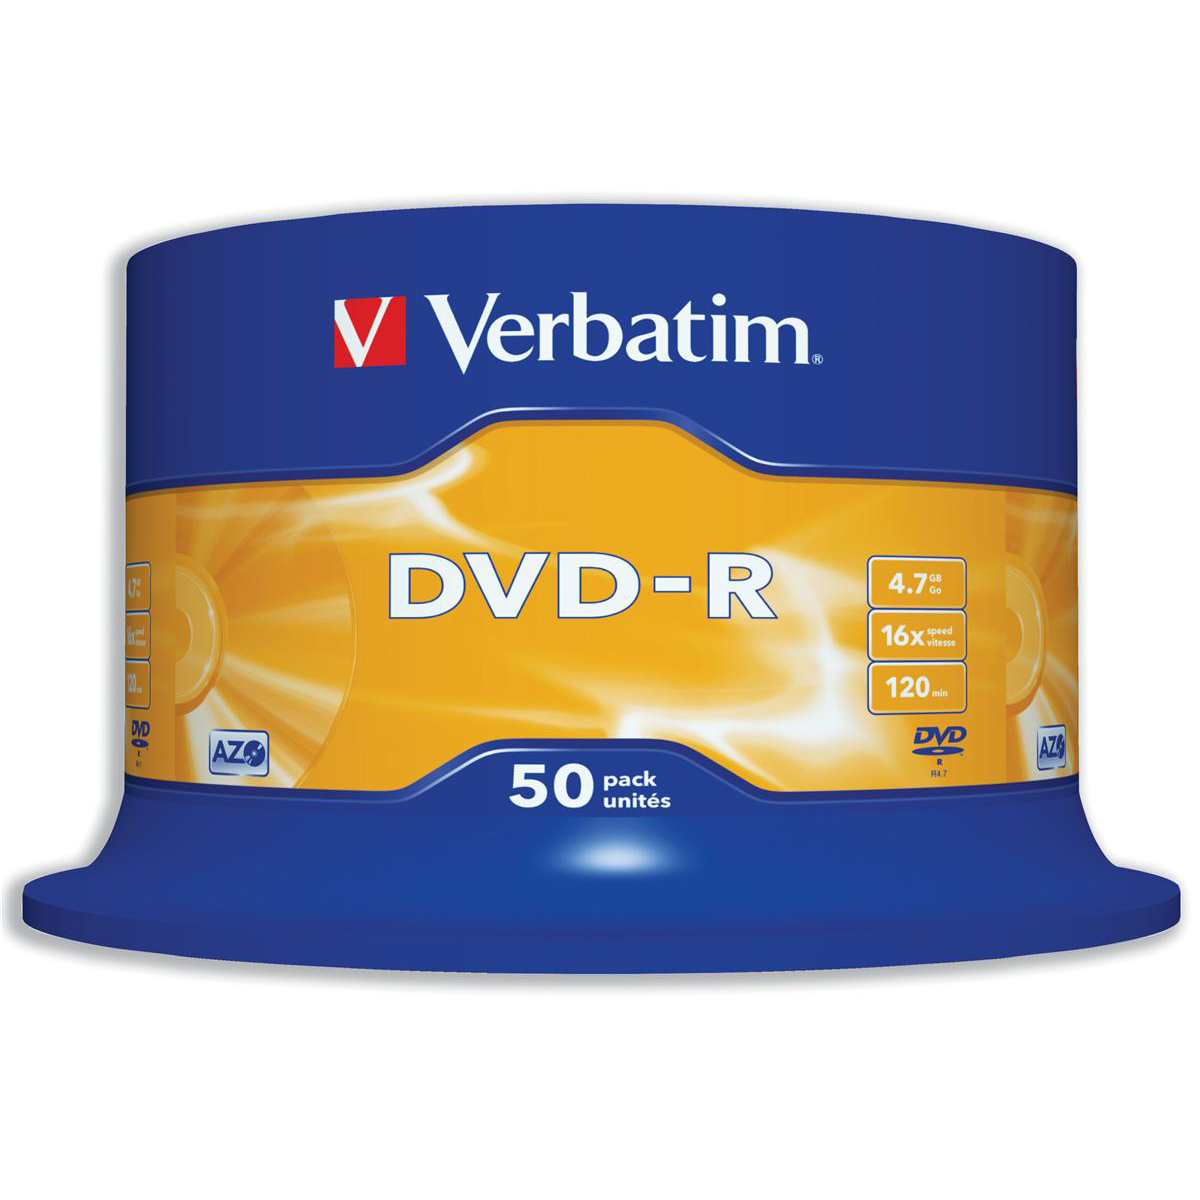 Verbatim DVD-R 4.7GB 16X Spindle Ref 43548 Pack 50